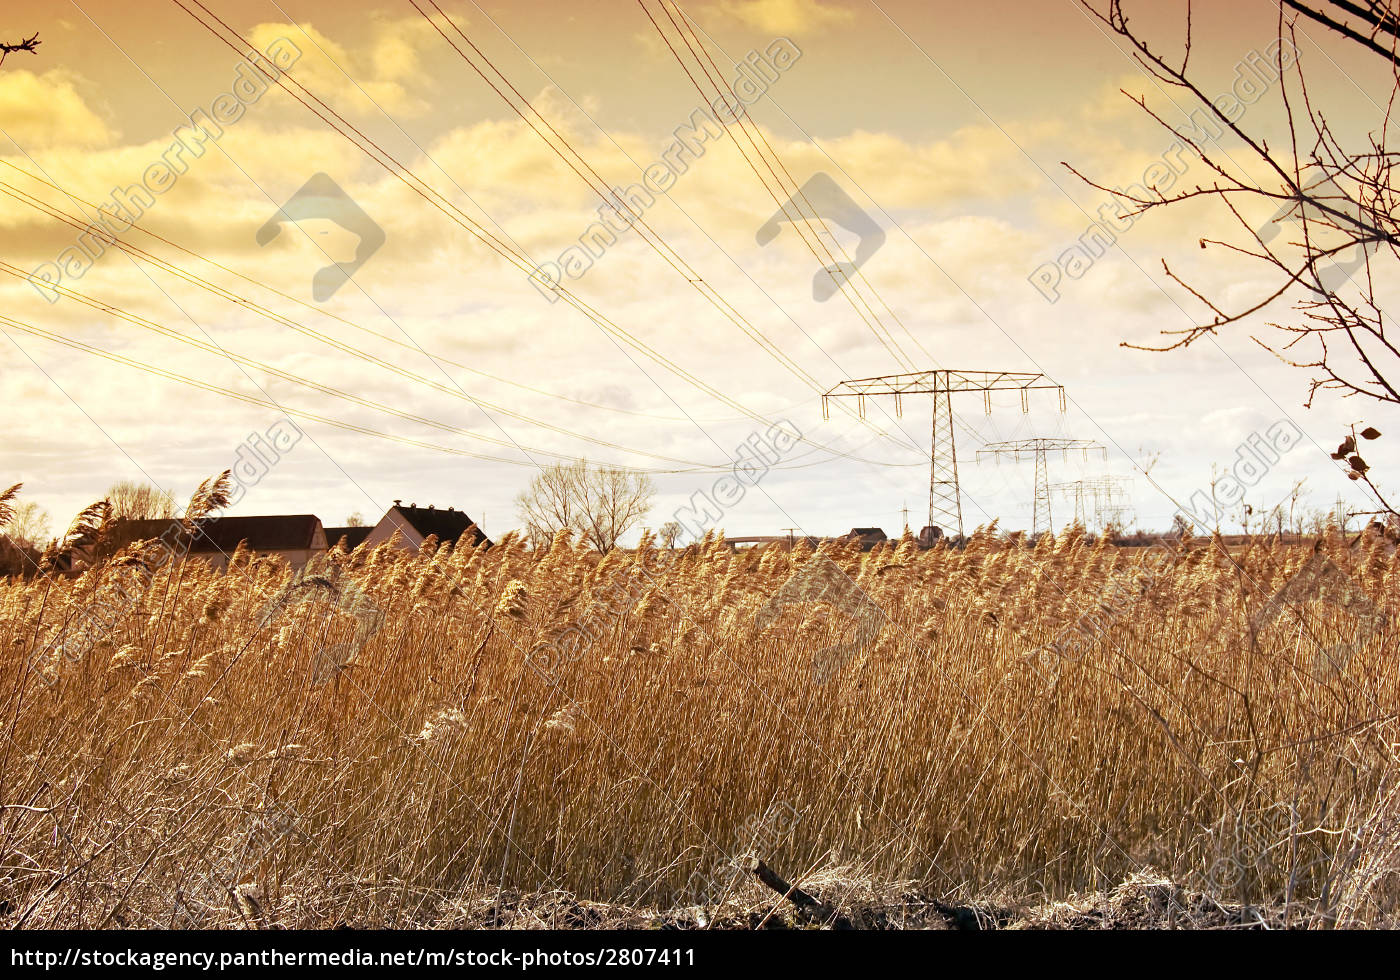 power, lines, and, electricity, pylons, in - 2807411